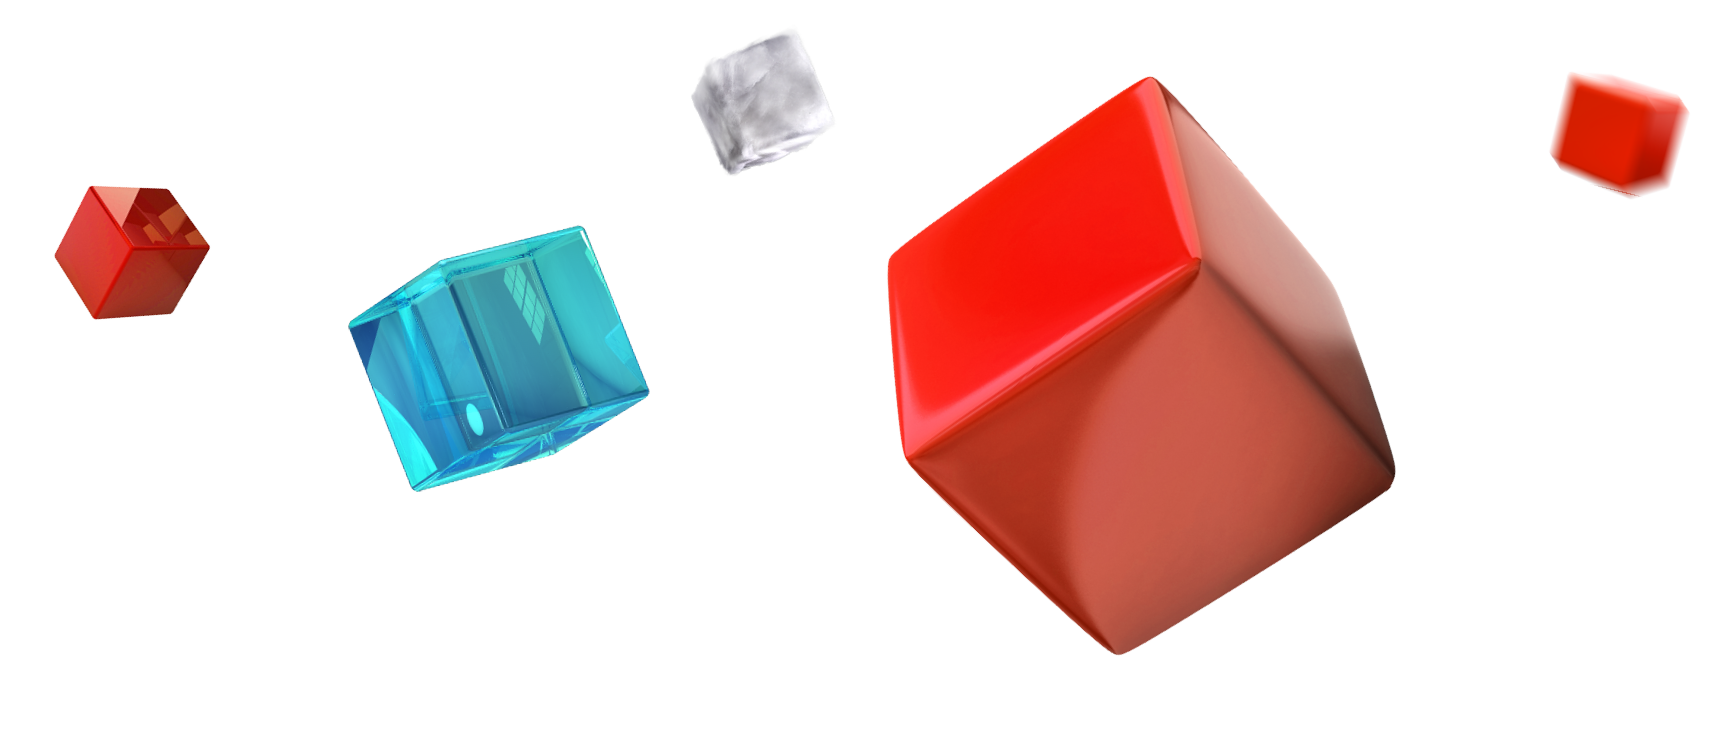 Transparent Cubes